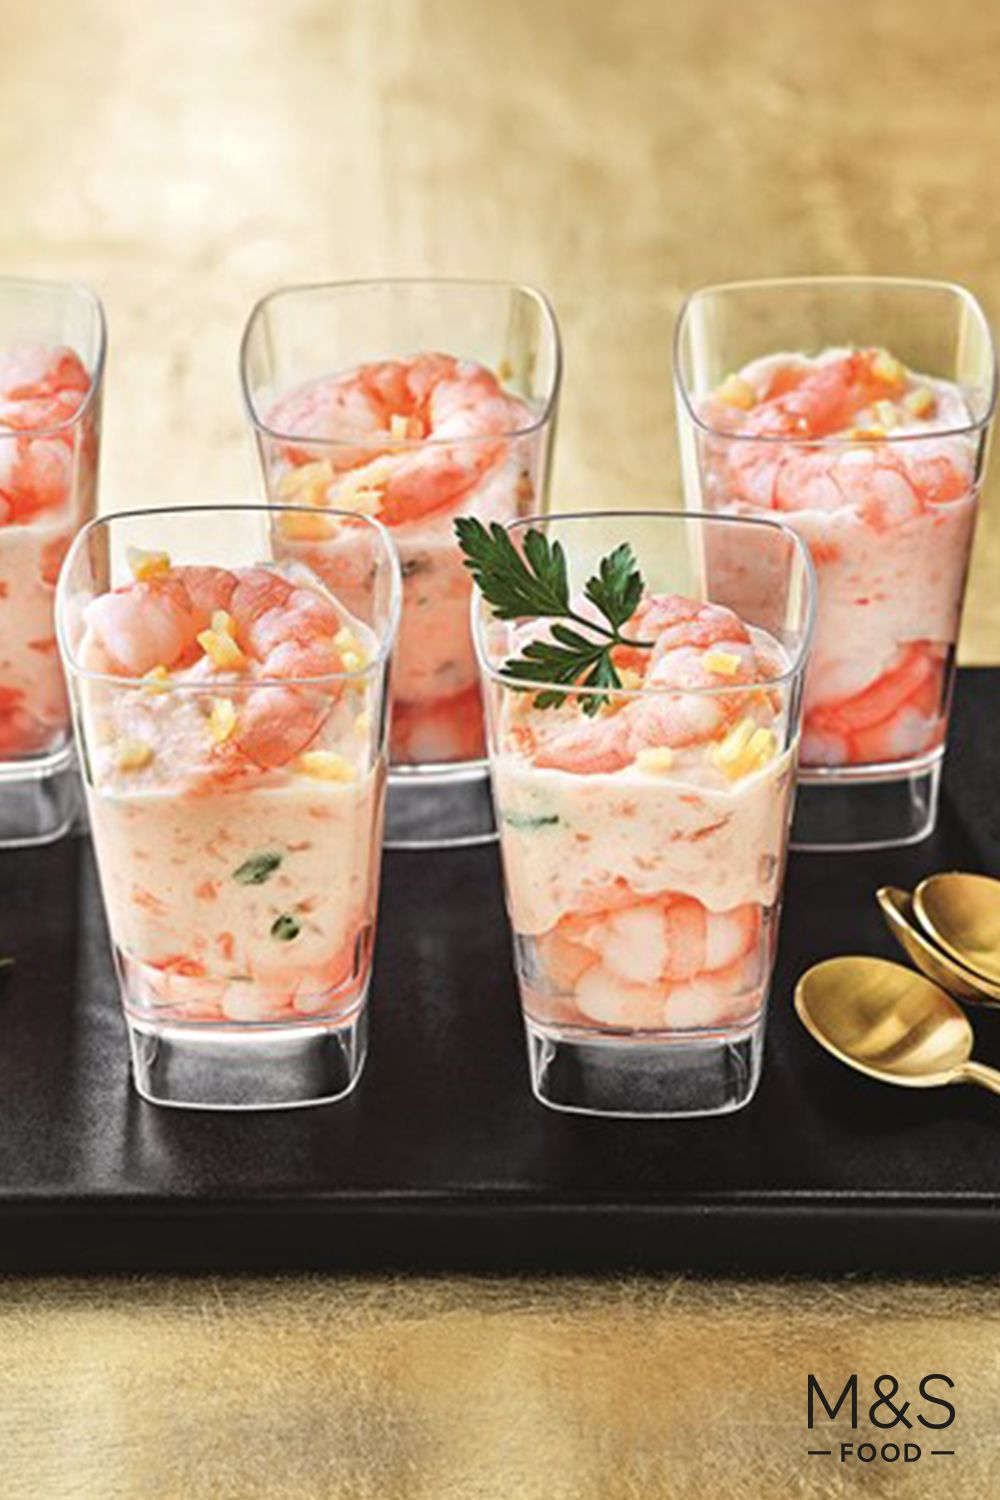 Balance a hearty main course with these fresh and fun shot